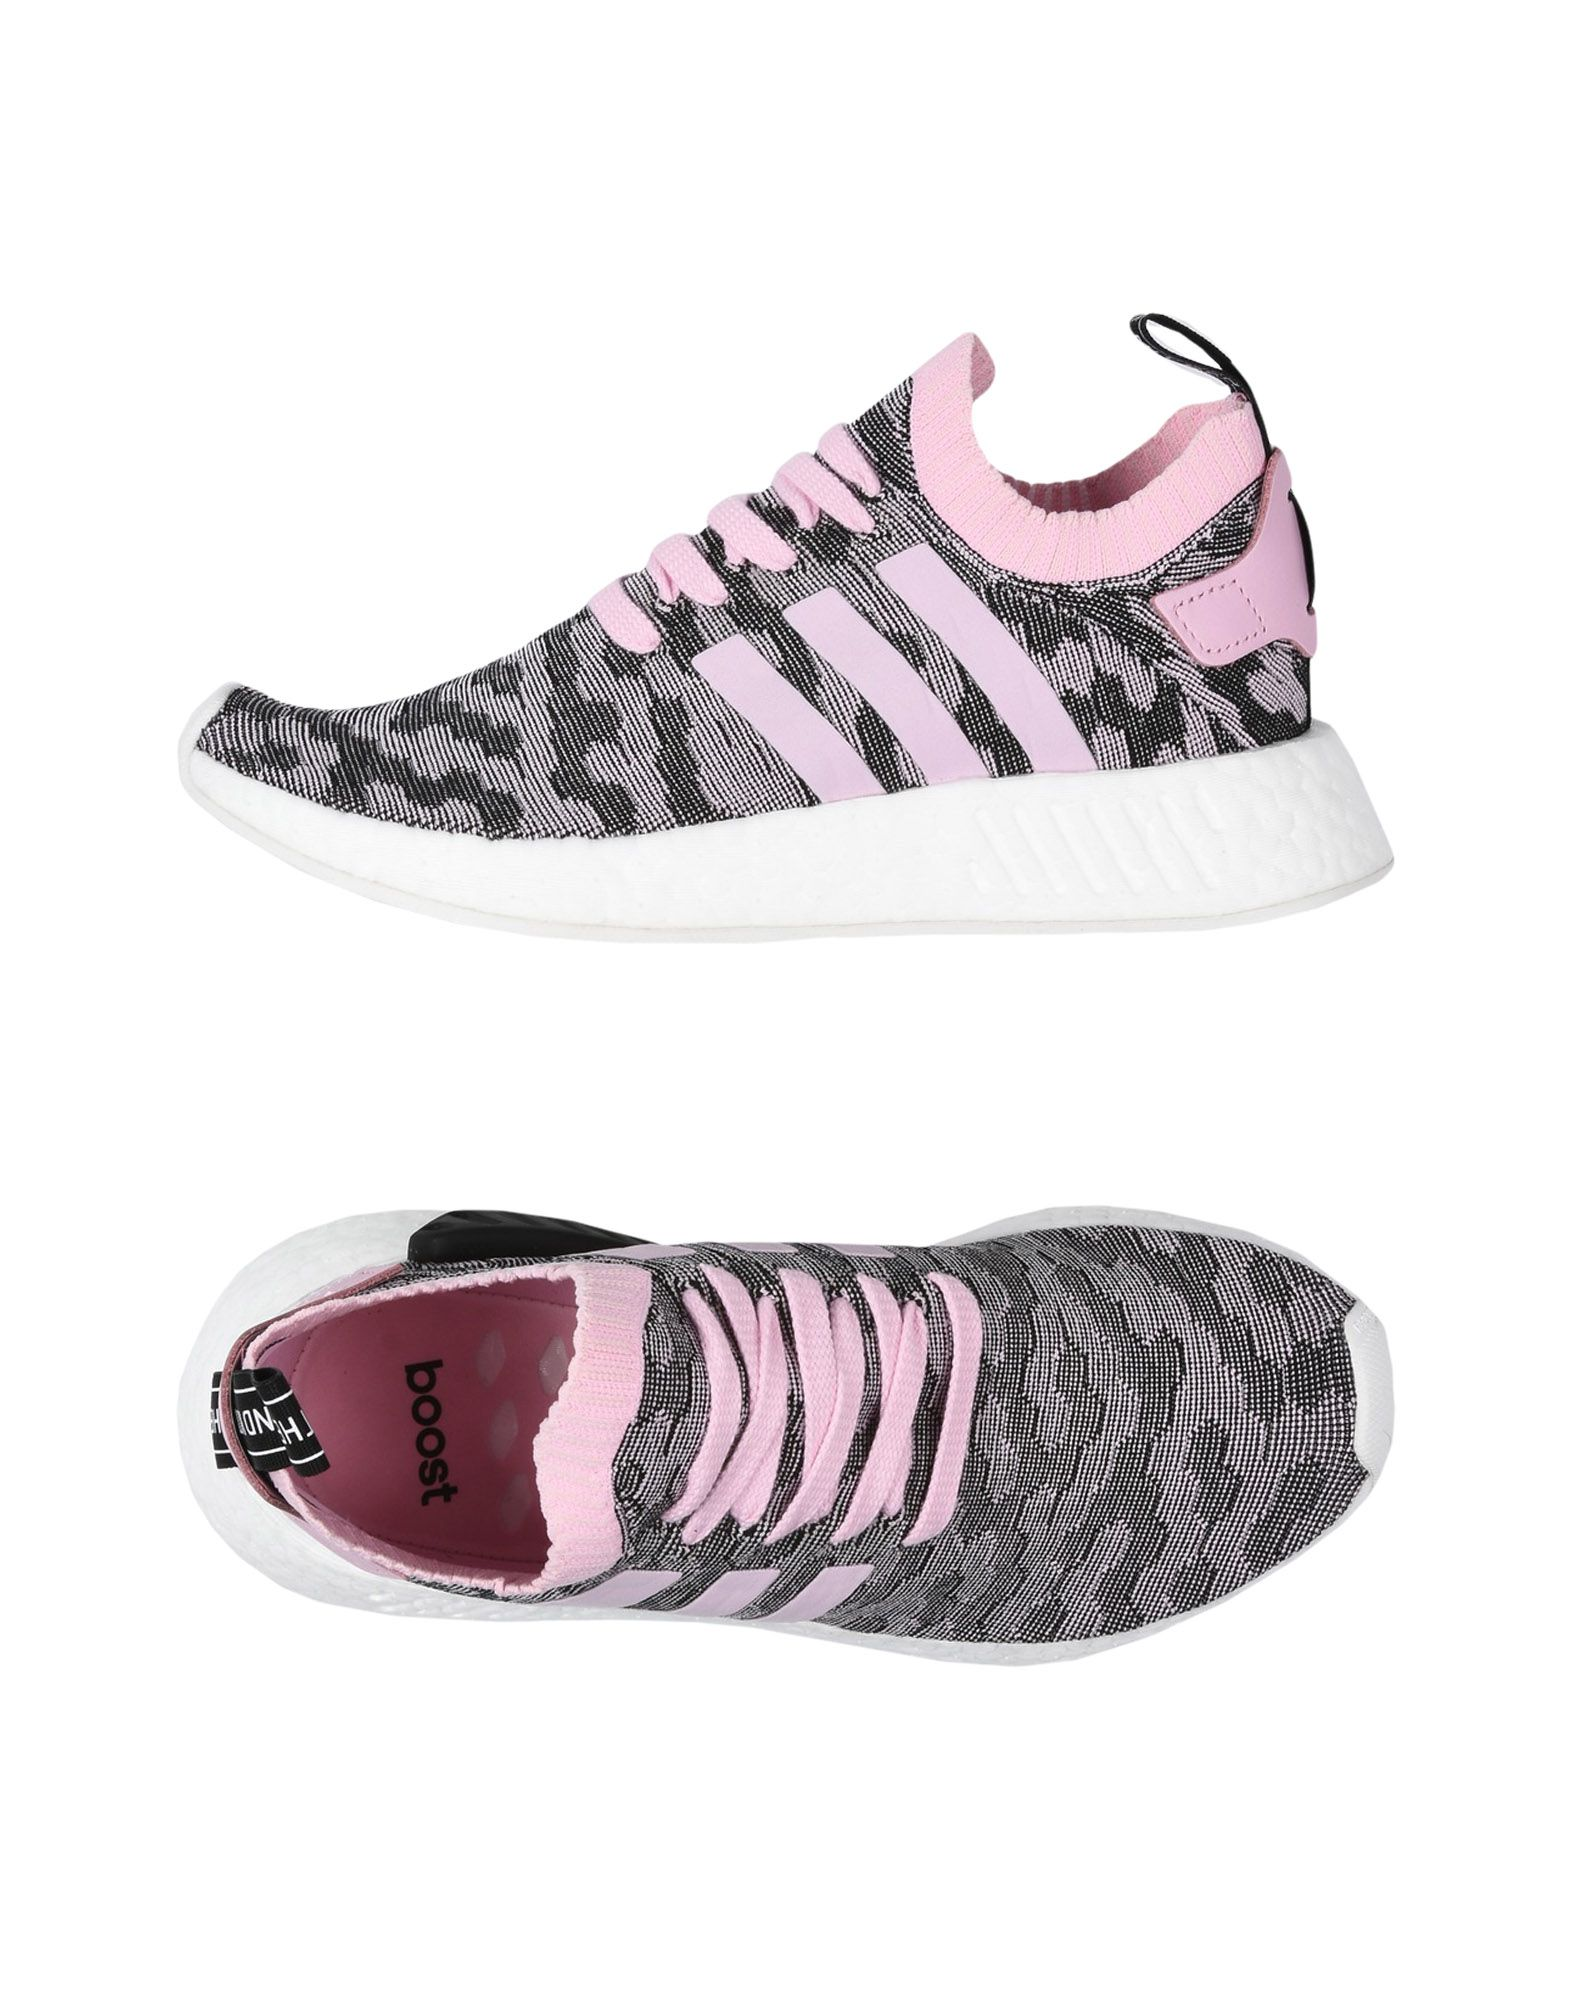 Adidas Originals Nmd_R2 Pk W - - - Sneakers - Women Adidas Originals Sneakers online on  United Kingdom - 11316263PT 73734c